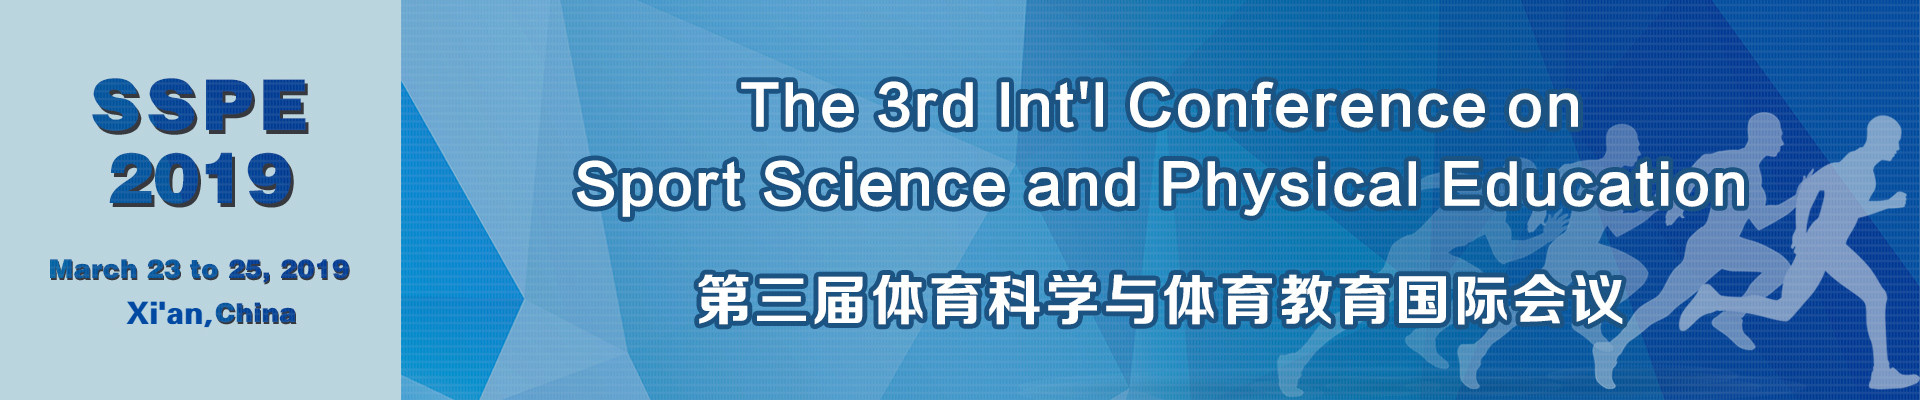 The 3rd Int'l Conference on Sport Science and Physical Education (SSPE 2019), Xi'an, Shanxi, China